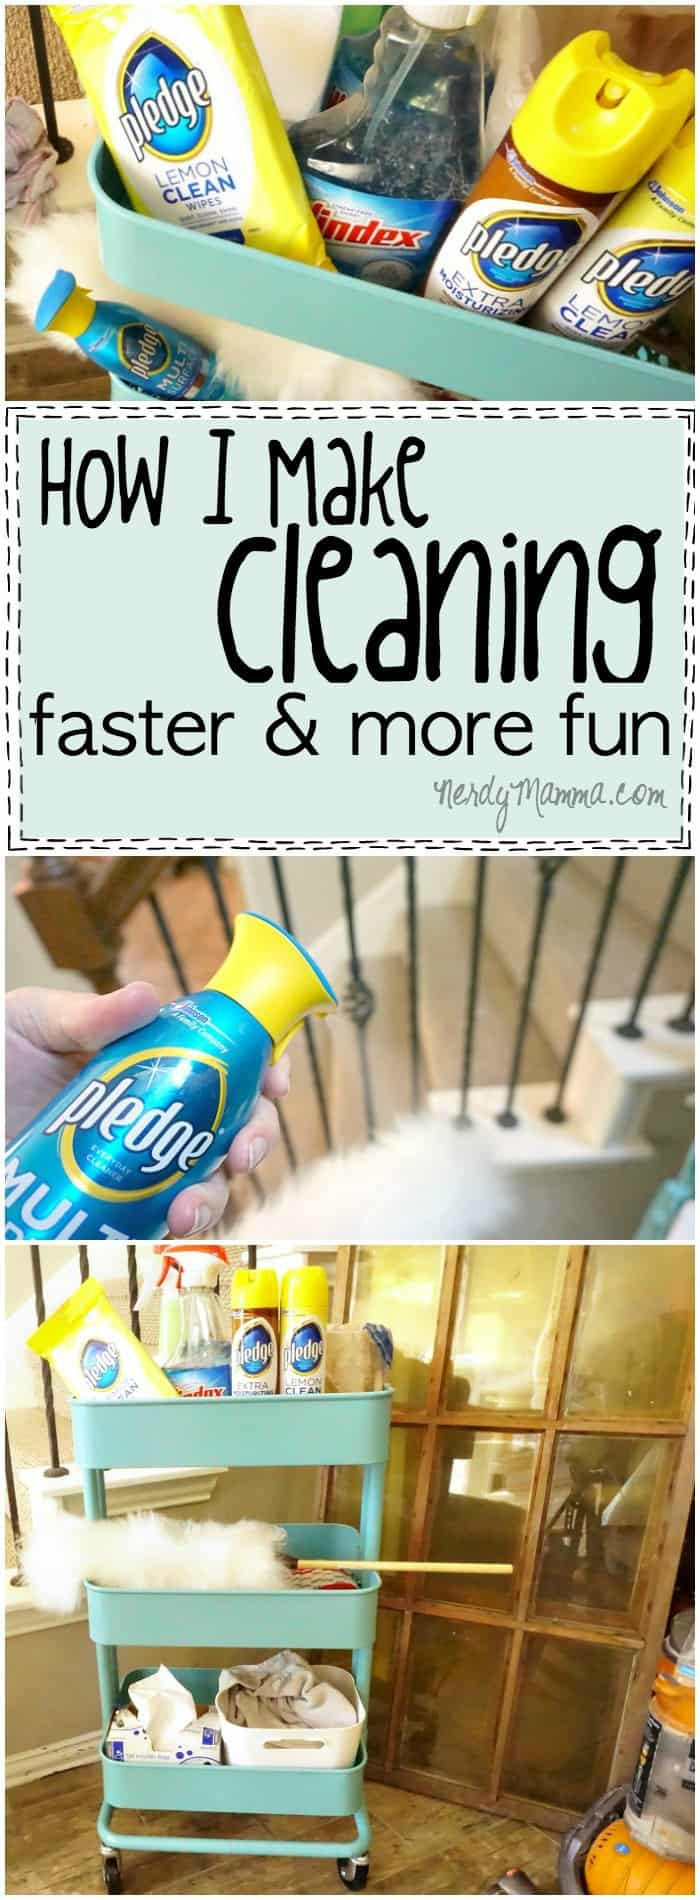 I love how she makes cleaning faster and easier--such a simple idea! And funny!